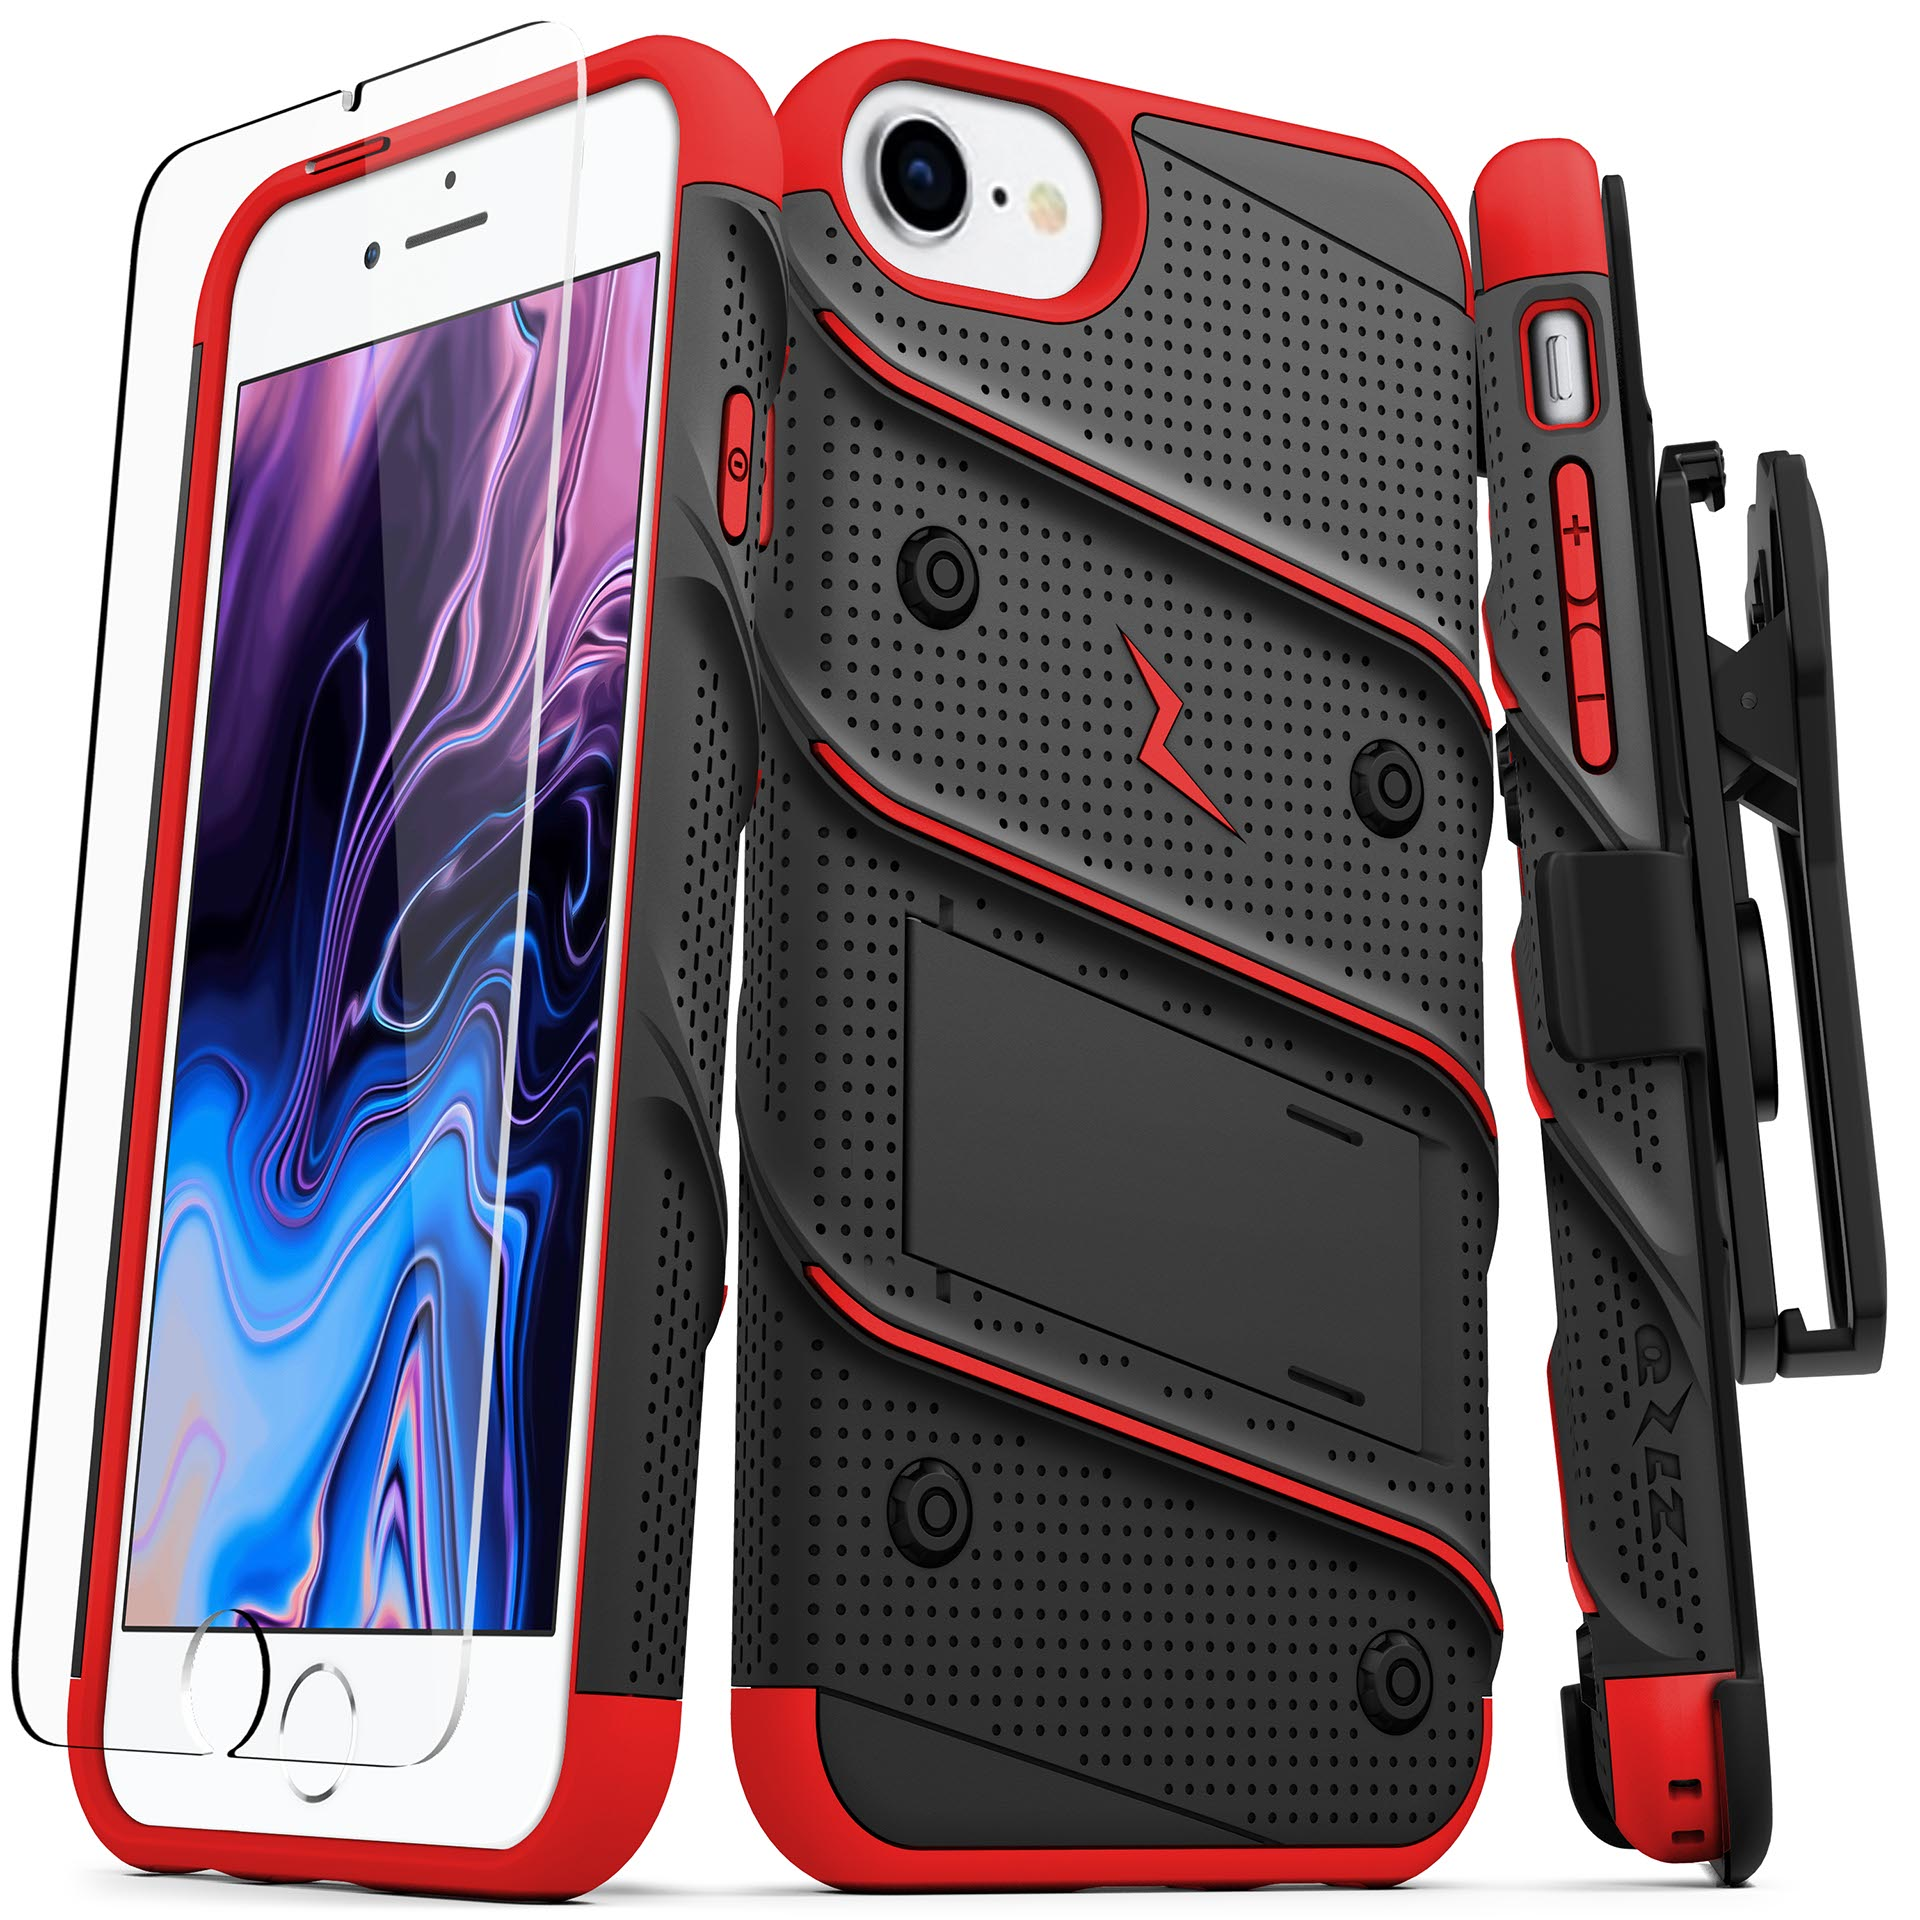 For iPhone 8 / iPhone 7 / 6s / 6 4.7in - BOLT Cover w/ Kickstand, Holster, Tempered Glass Screen Protector, Lanyard